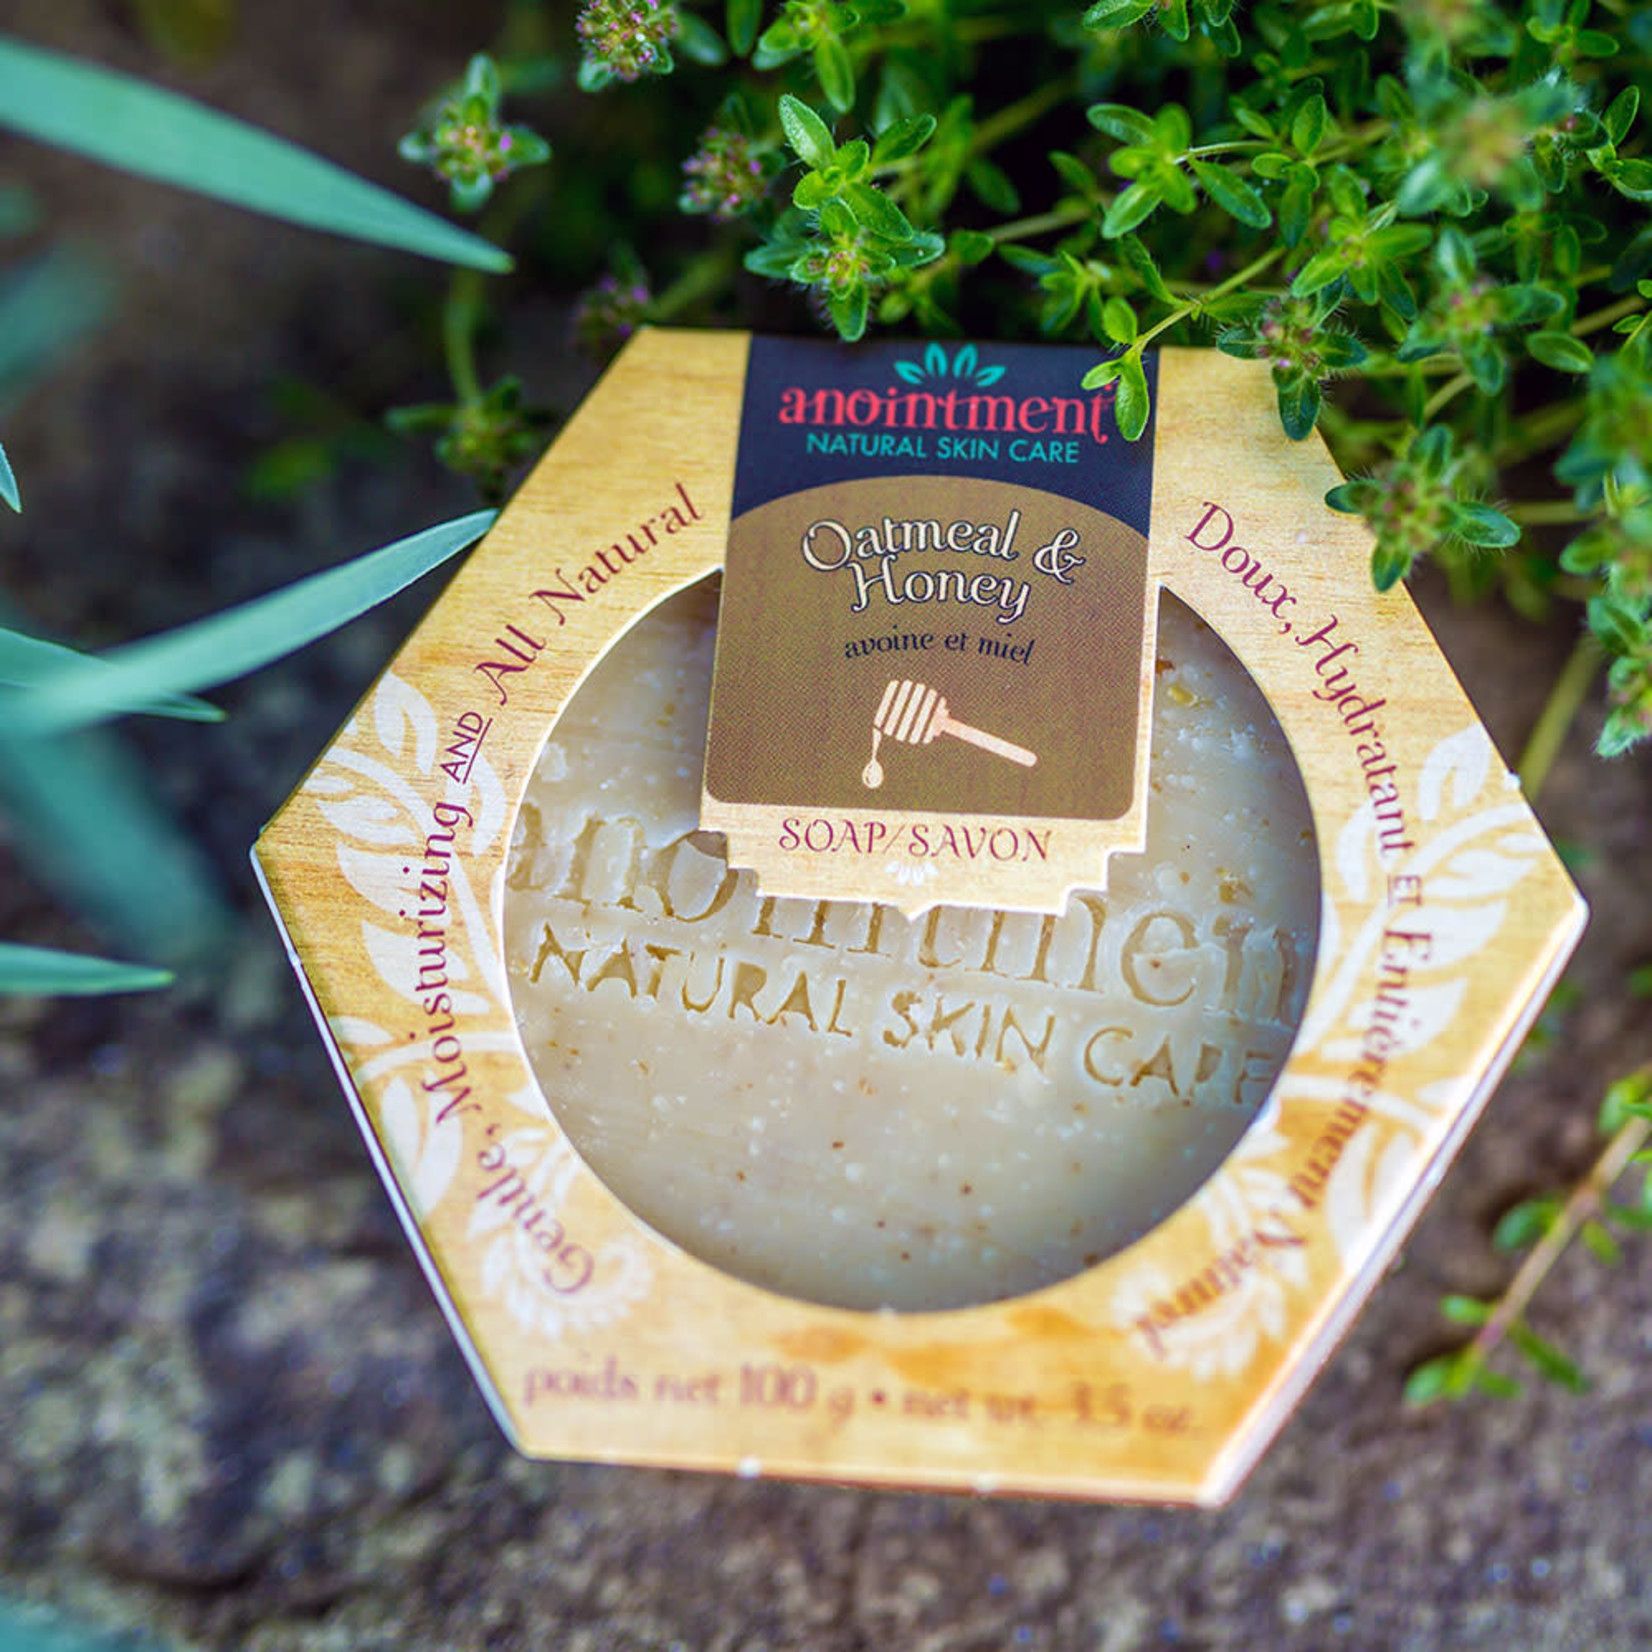 Anointment Natural Skin Care Anointment Baby Care